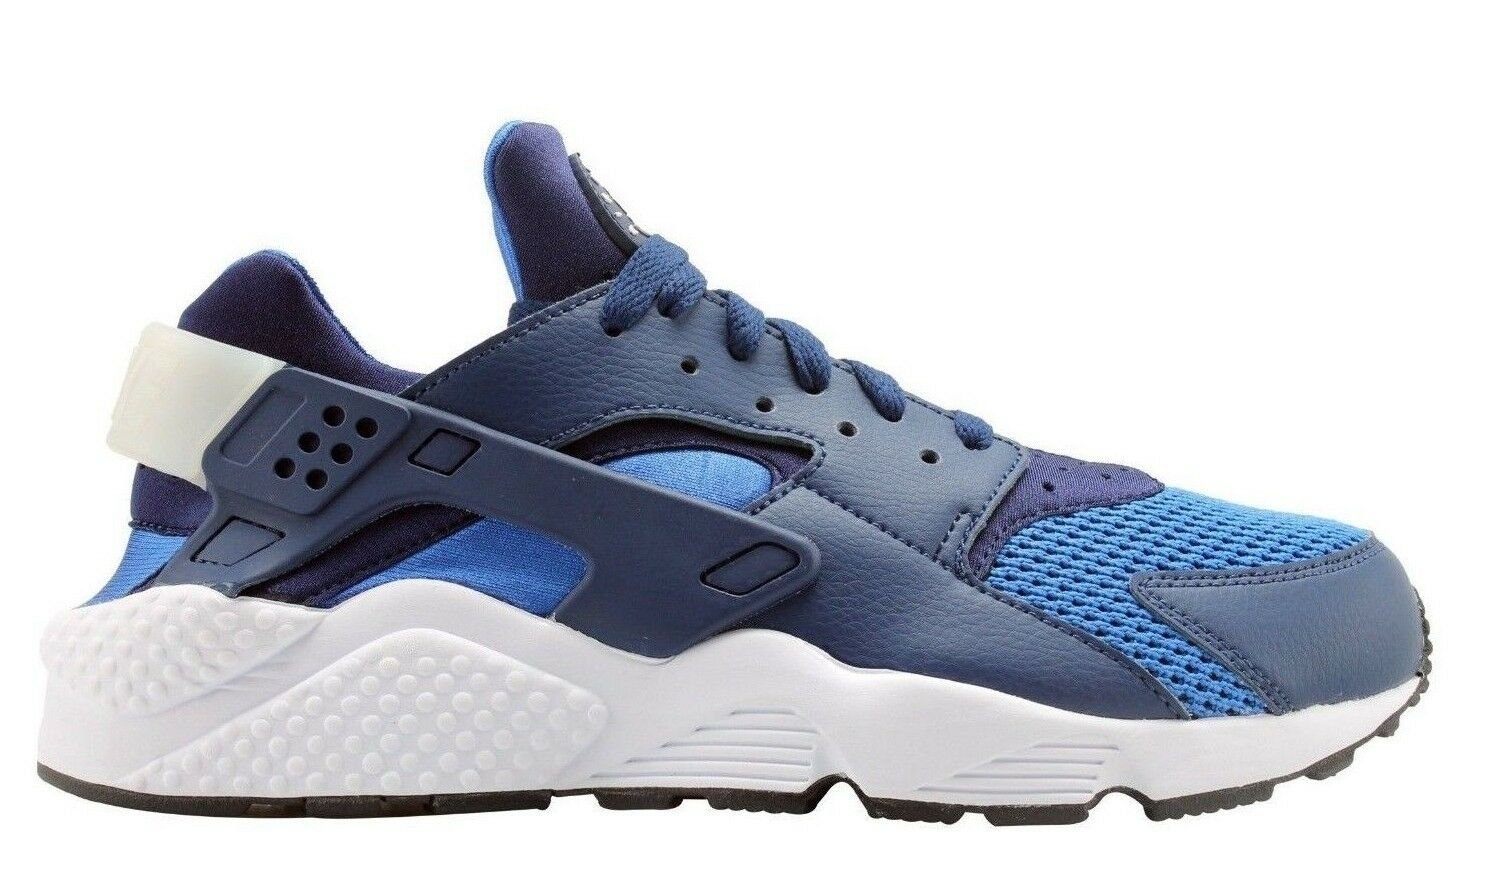 Nike Men's AIR HUARACHE Running shoes blueee Void 318429-421 c